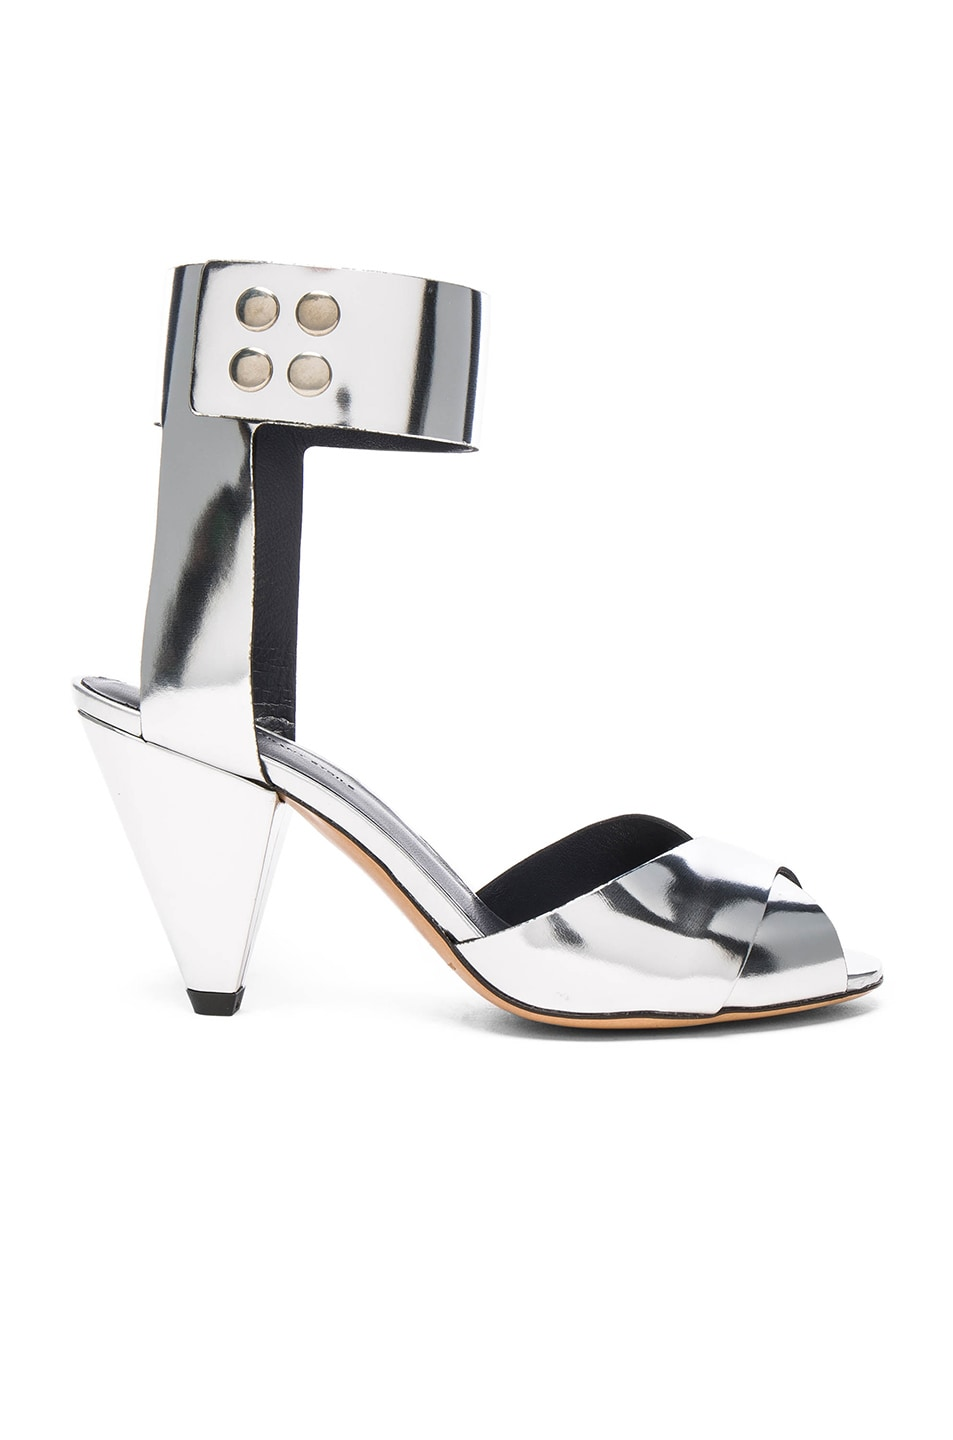 Image 1 of Isabel Marant Etoile Leather Meegan Metallic Heels in Silver